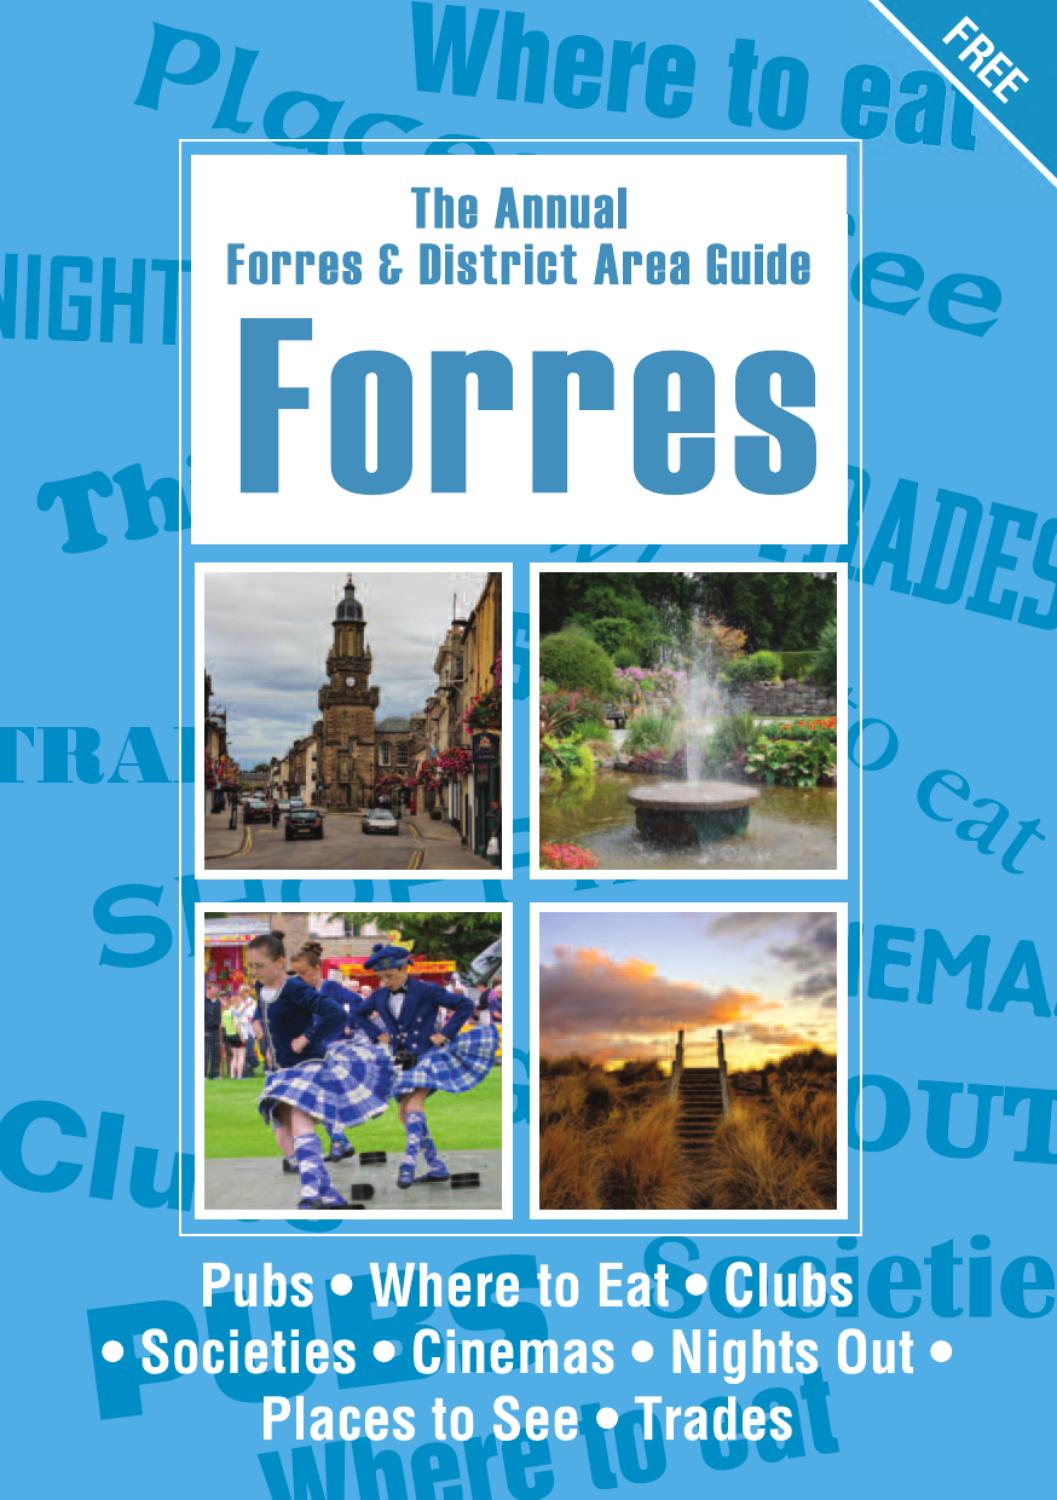 Sweet The Annual Forres  District Area Guide By David Nelmes  Issuu With Great Ramsay Gardens Edinburgh Besides Stainless Steel Garden Tools Furthermore Tsokkos Gardens With Lovely Hong Kong Gardens Also Garden Furniture Dining Sets In Addition Cheap Garden Ornaments And Monet Gardens Paris As Well As Chelsea Psychic Gardens Additionally Sitting In An English Garden From Issuucom With   Great The Annual Forres  District Area Guide By David Nelmes  Issuu With Lovely Ramsay Gardens Edinburgh Besides Stainless Steel Garden Tools Furthermore Tsokkos Gardens And Sweet Hong Kong Gardens Also Garden Furniture Dining Sets In Addition Cheap Garden Ornaments From Issuucom